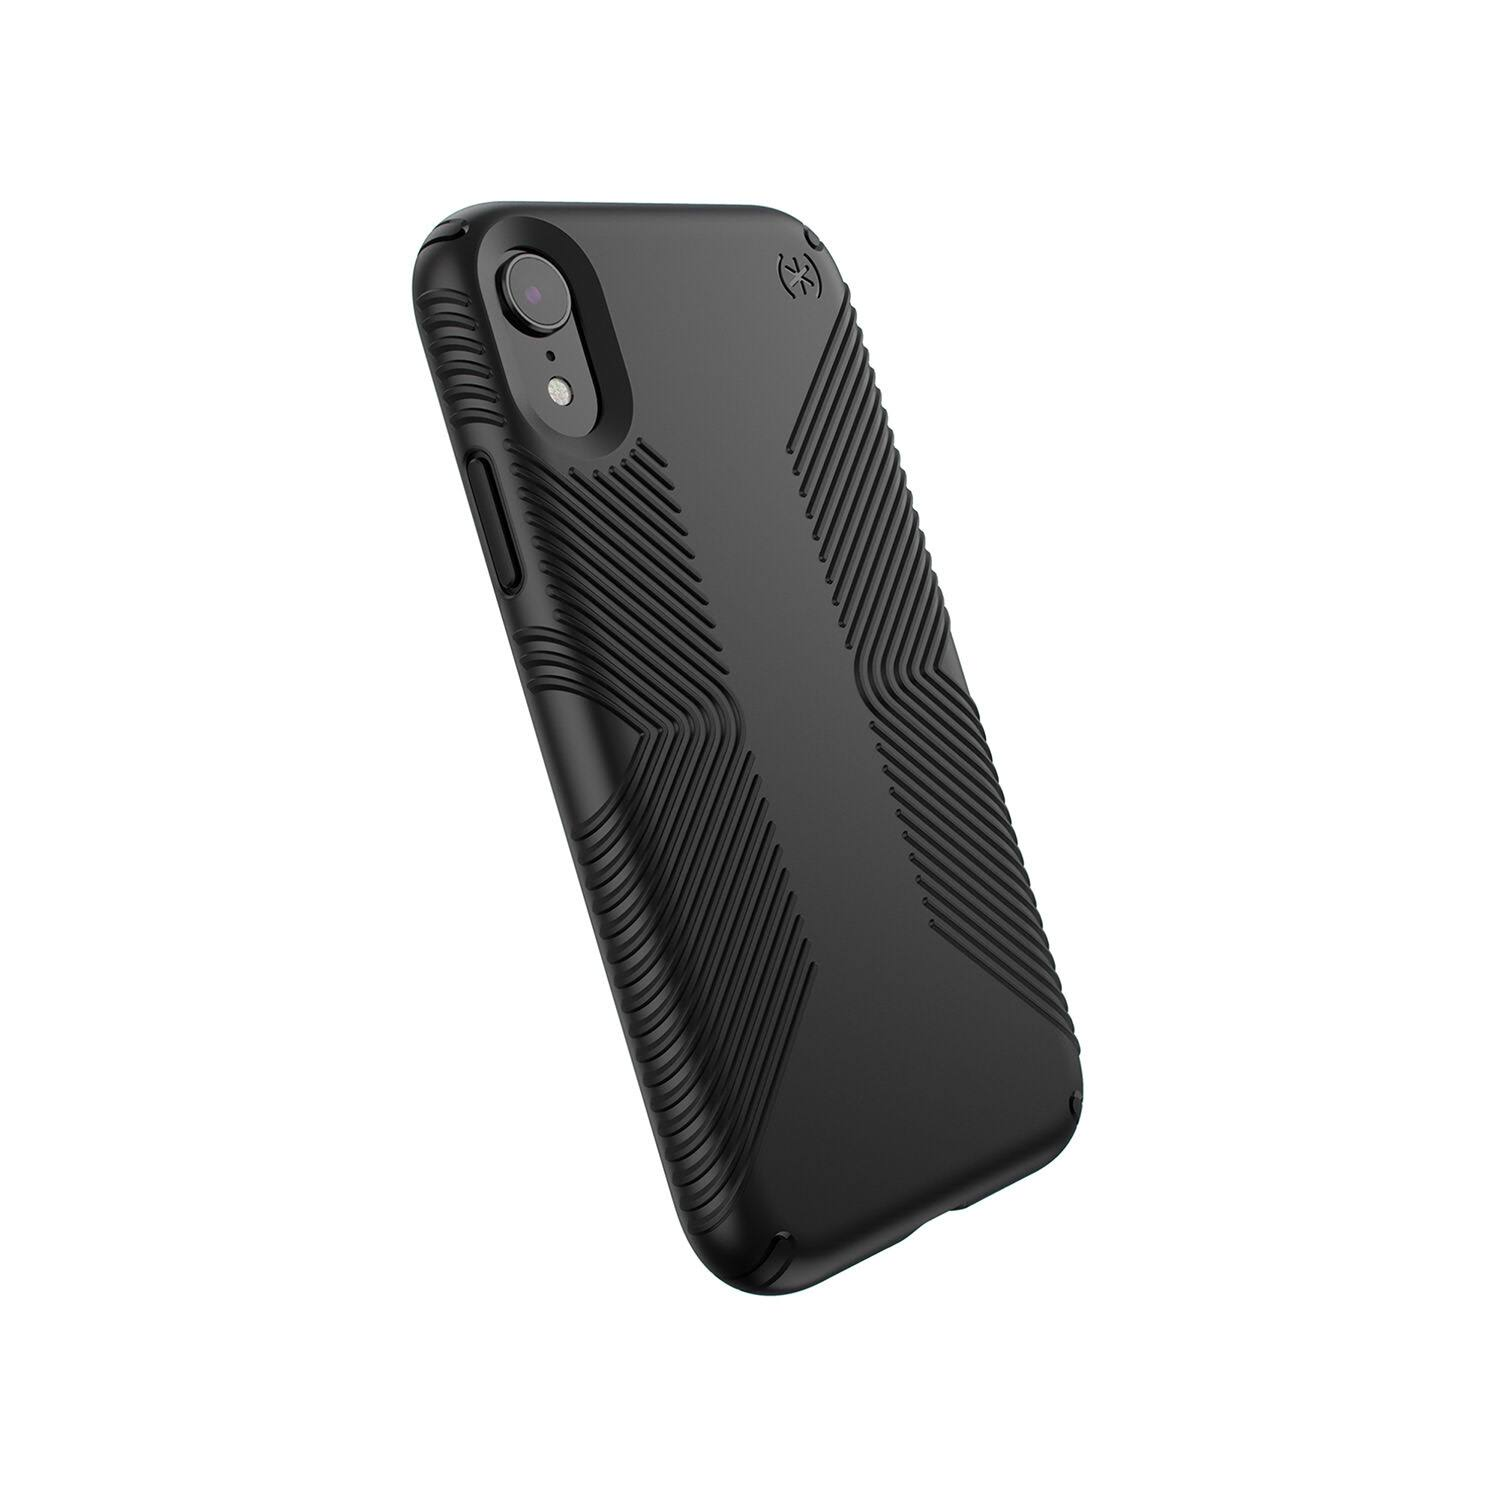 Speck Ap-1004 Presidio Grip Case - Black